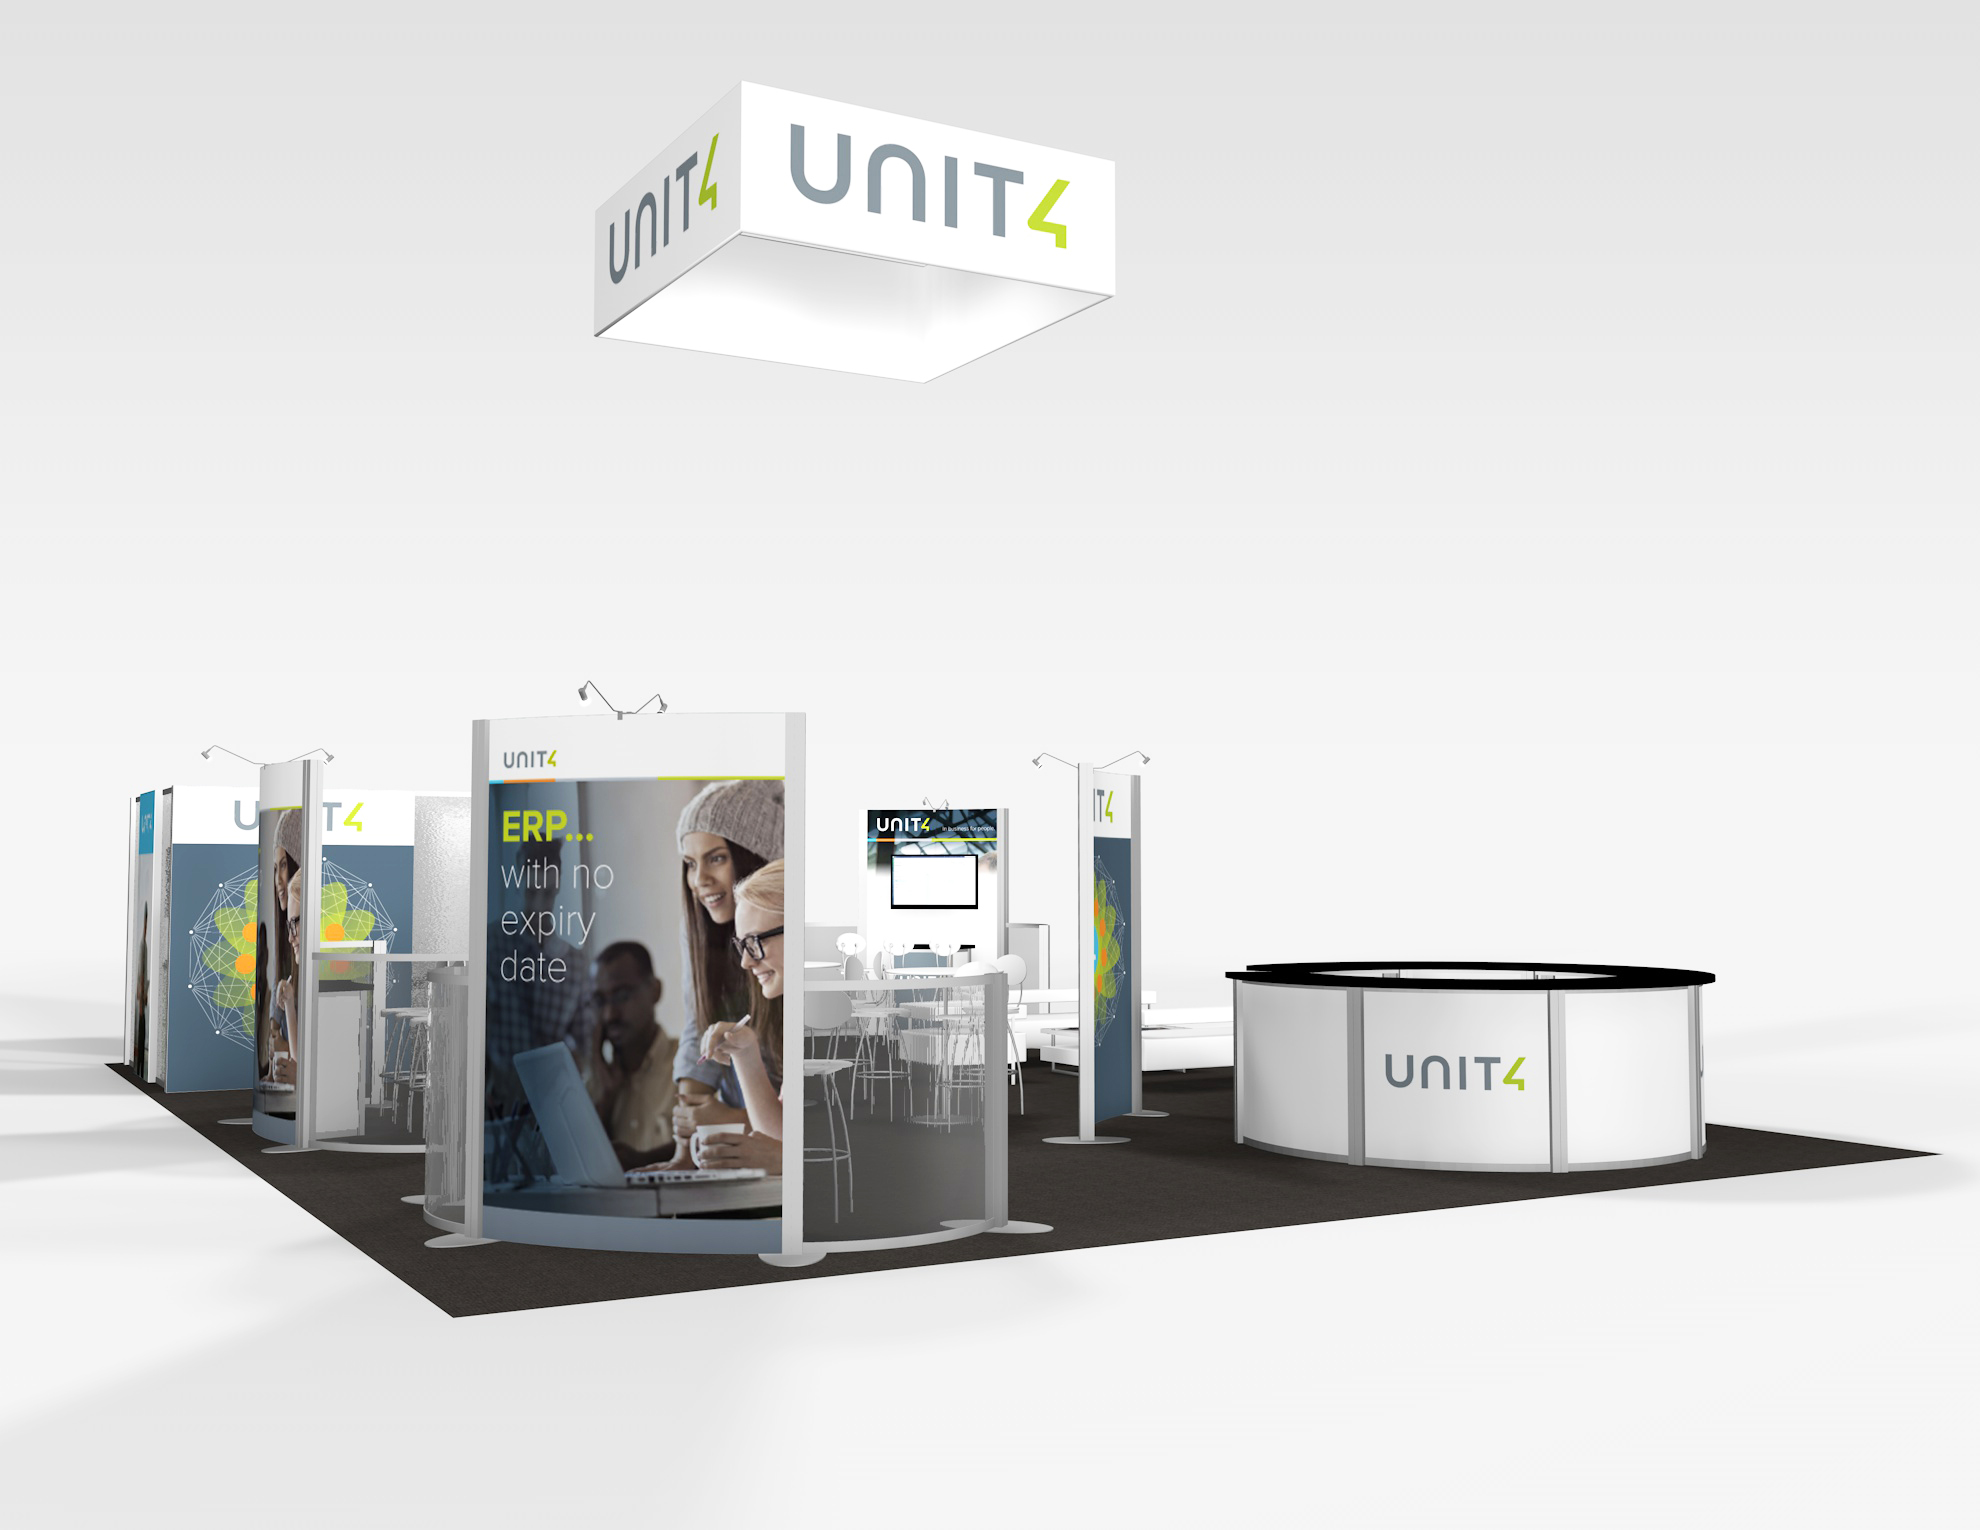 RE-9083 Rental Exhibit / 30' x 40' Island Trade Show Display – Image 2